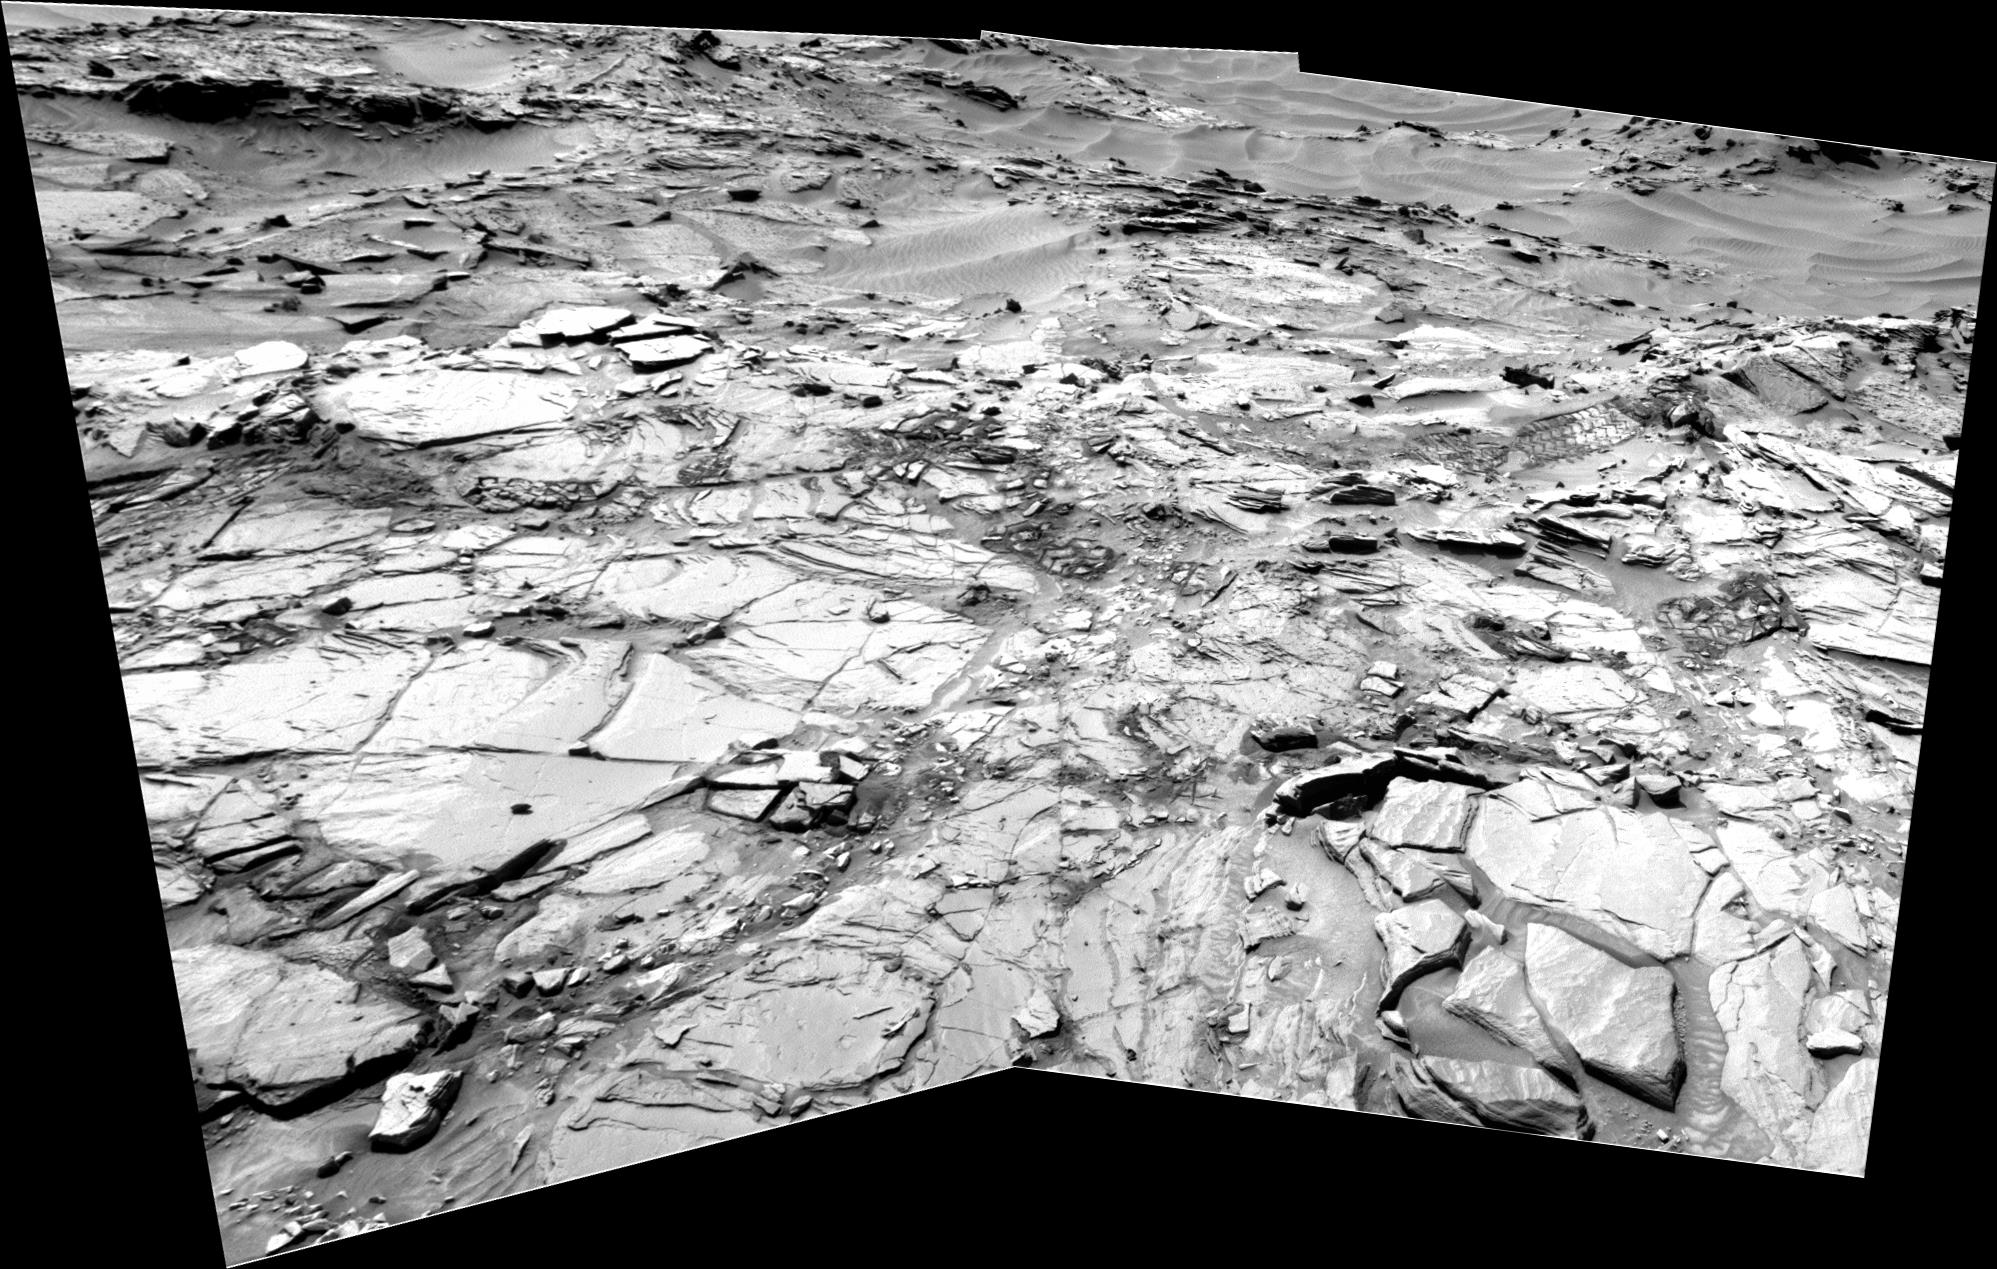 panoramic curiosity rover view b&w 3 - sol 1344 - was life on mars